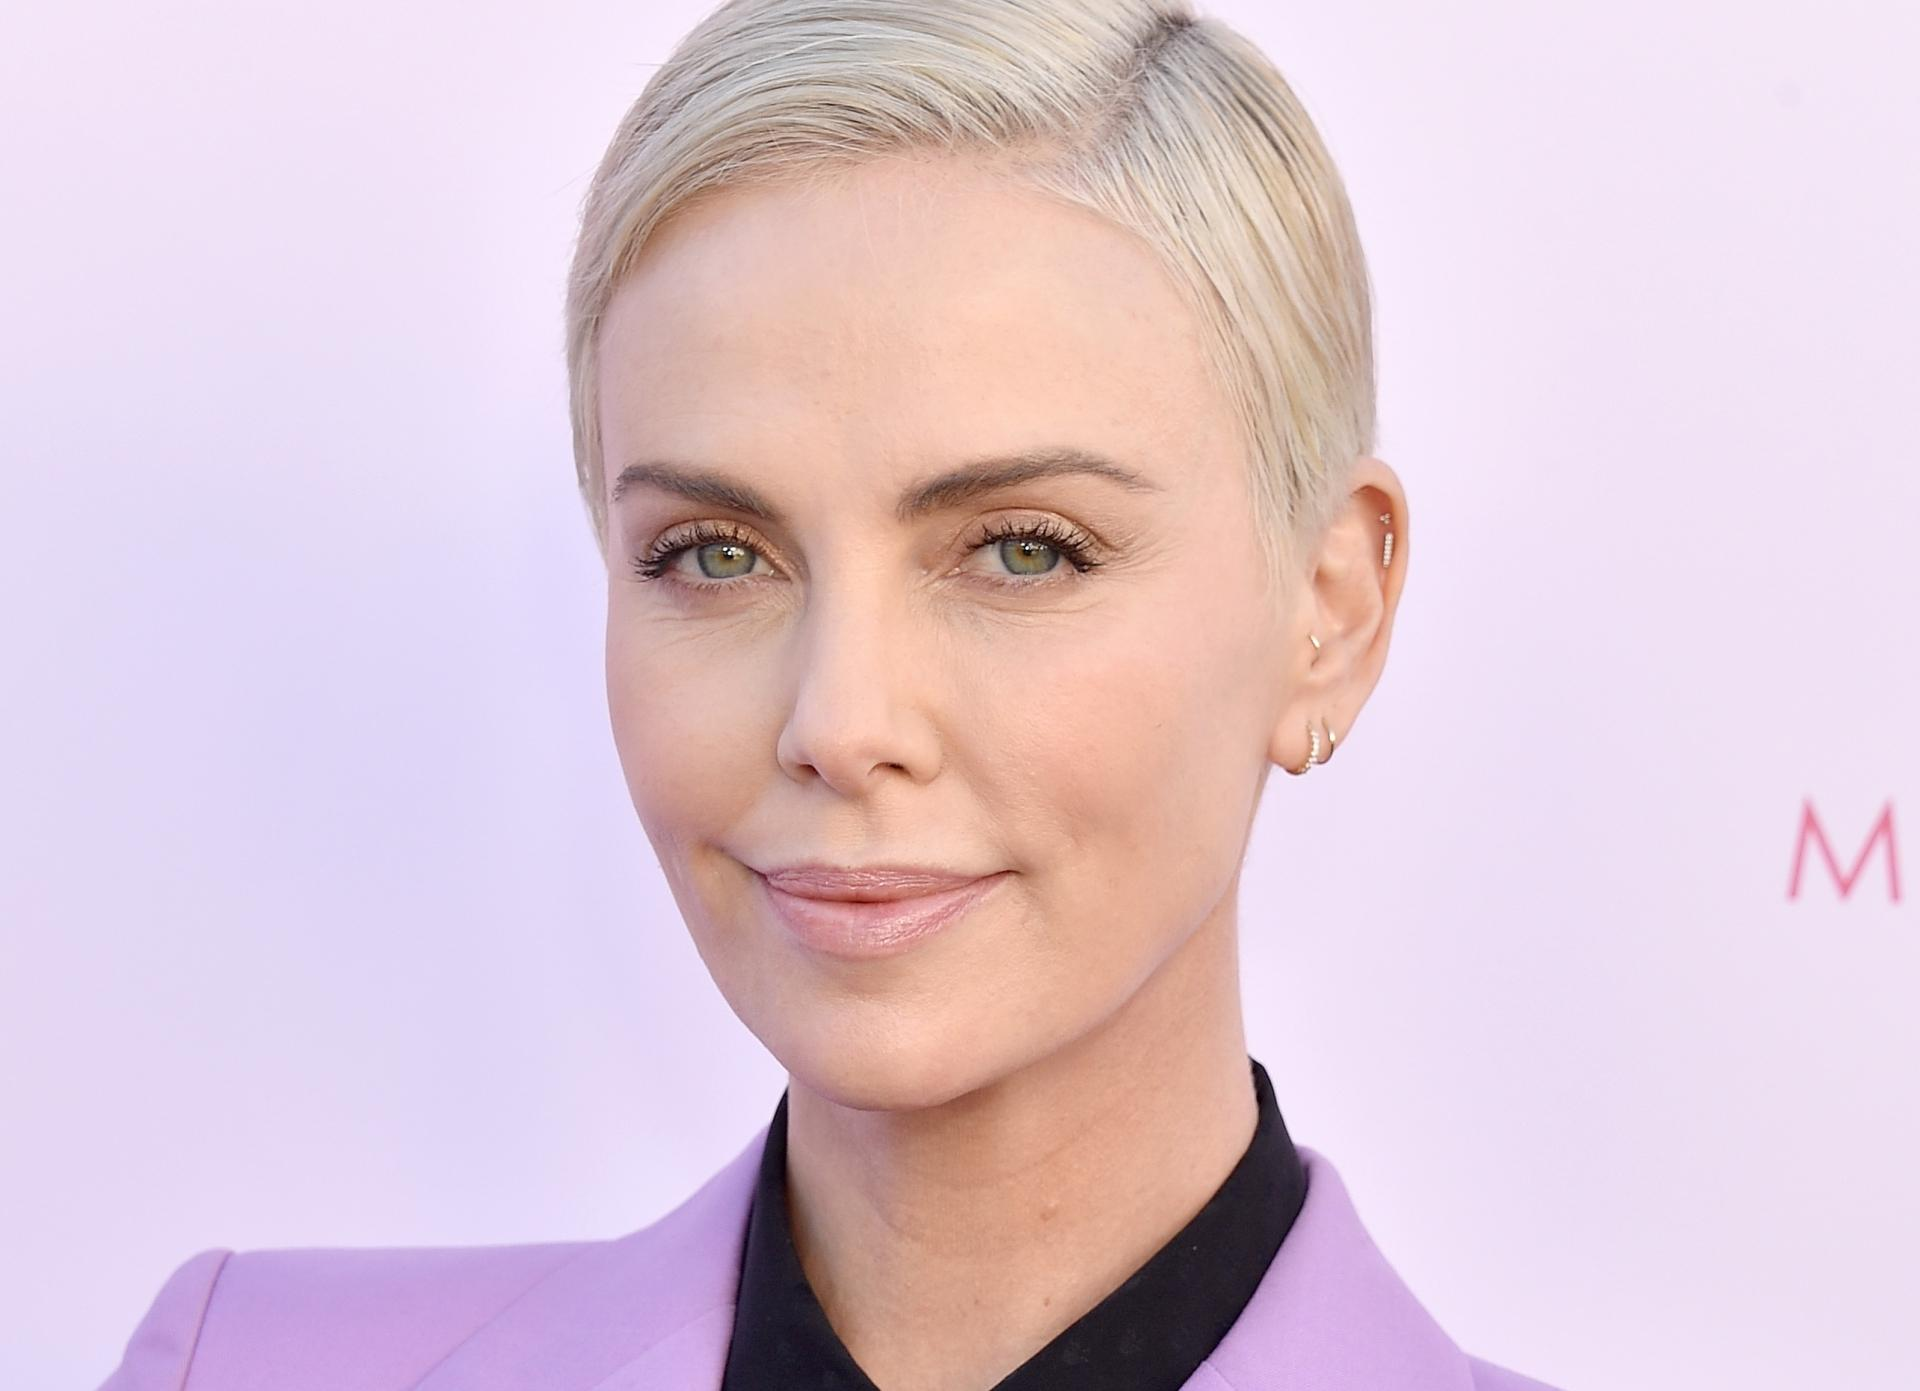 CHARLIZE THERON TO REMAKE GAME OF THRONES